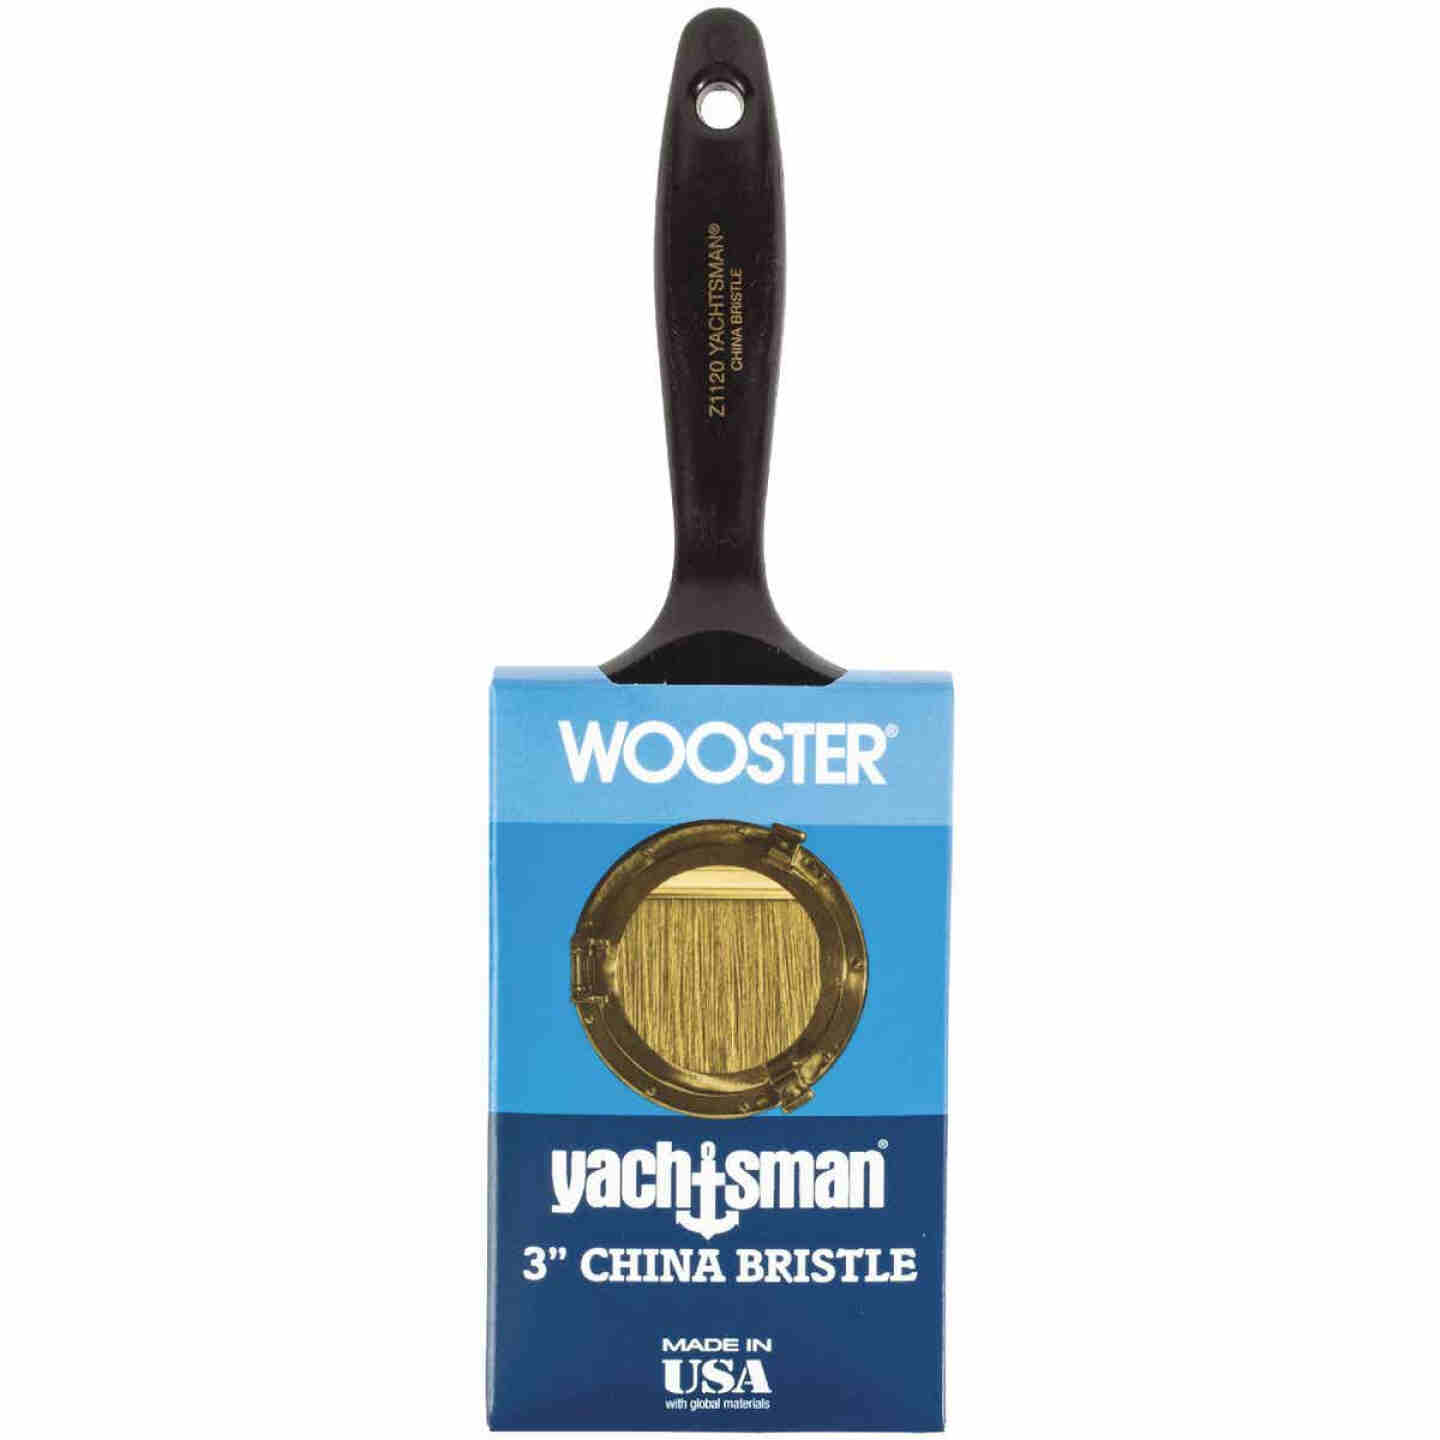 Wooster Yachtsman Varnish 3 In. Flat Paint Brush Image 1